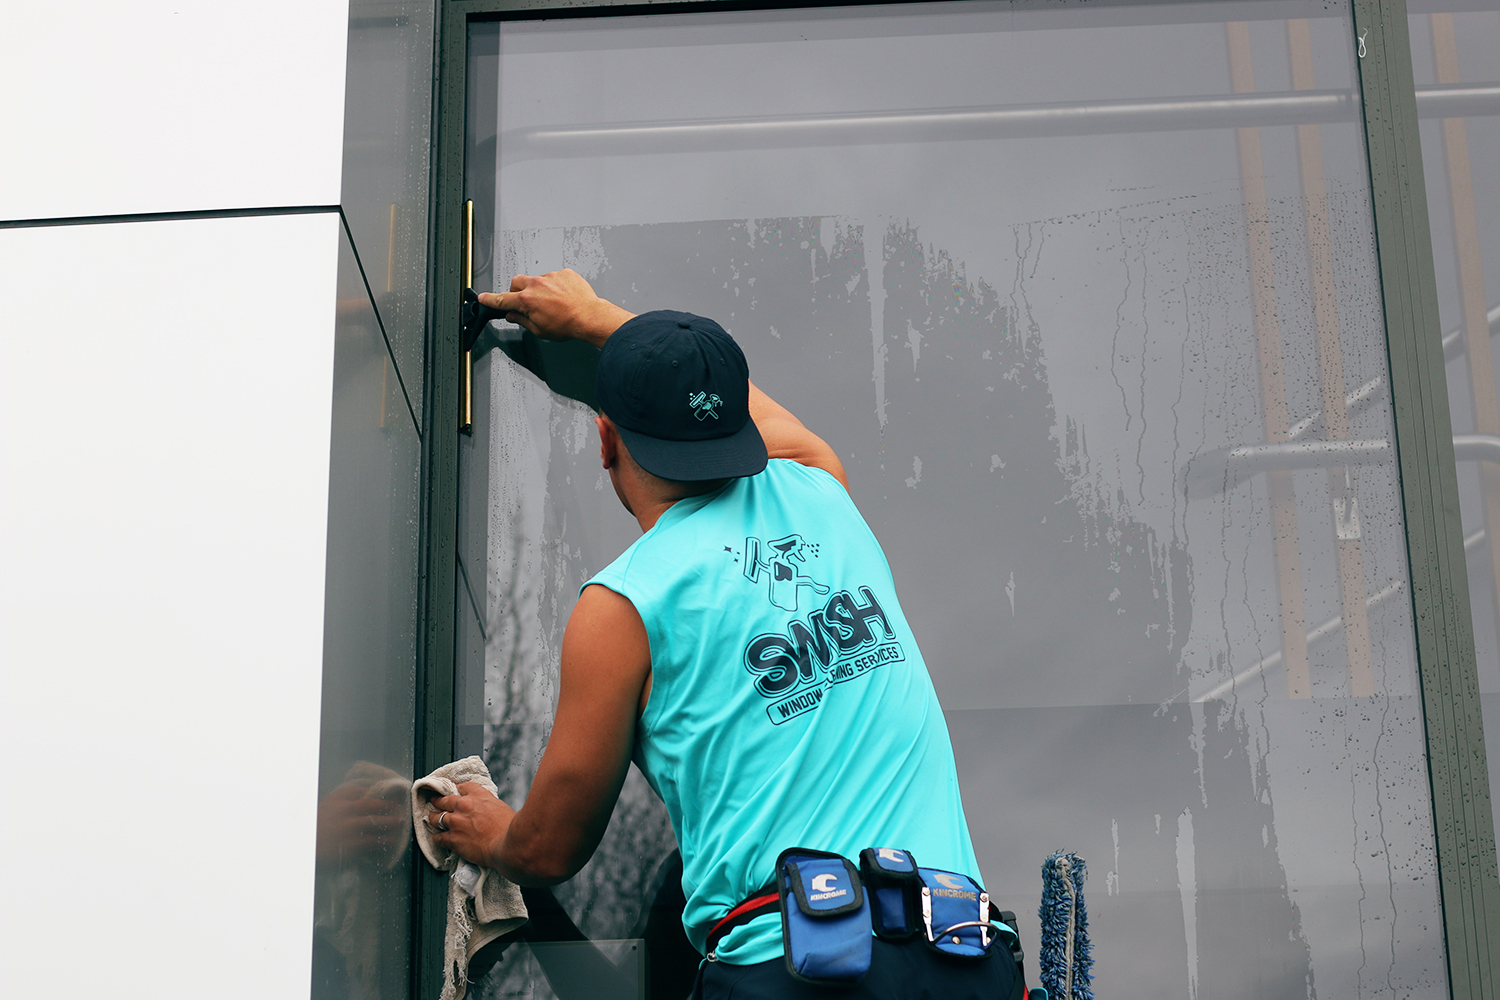 - Our prices are competitive, we are always on time and are flexible if needed (working weekends or after hours). Most importantly we always take steps to mitigate the risks involved with Commercial Window Cleaning and take steps to ensure both the public, your employees and ourselves are safe.